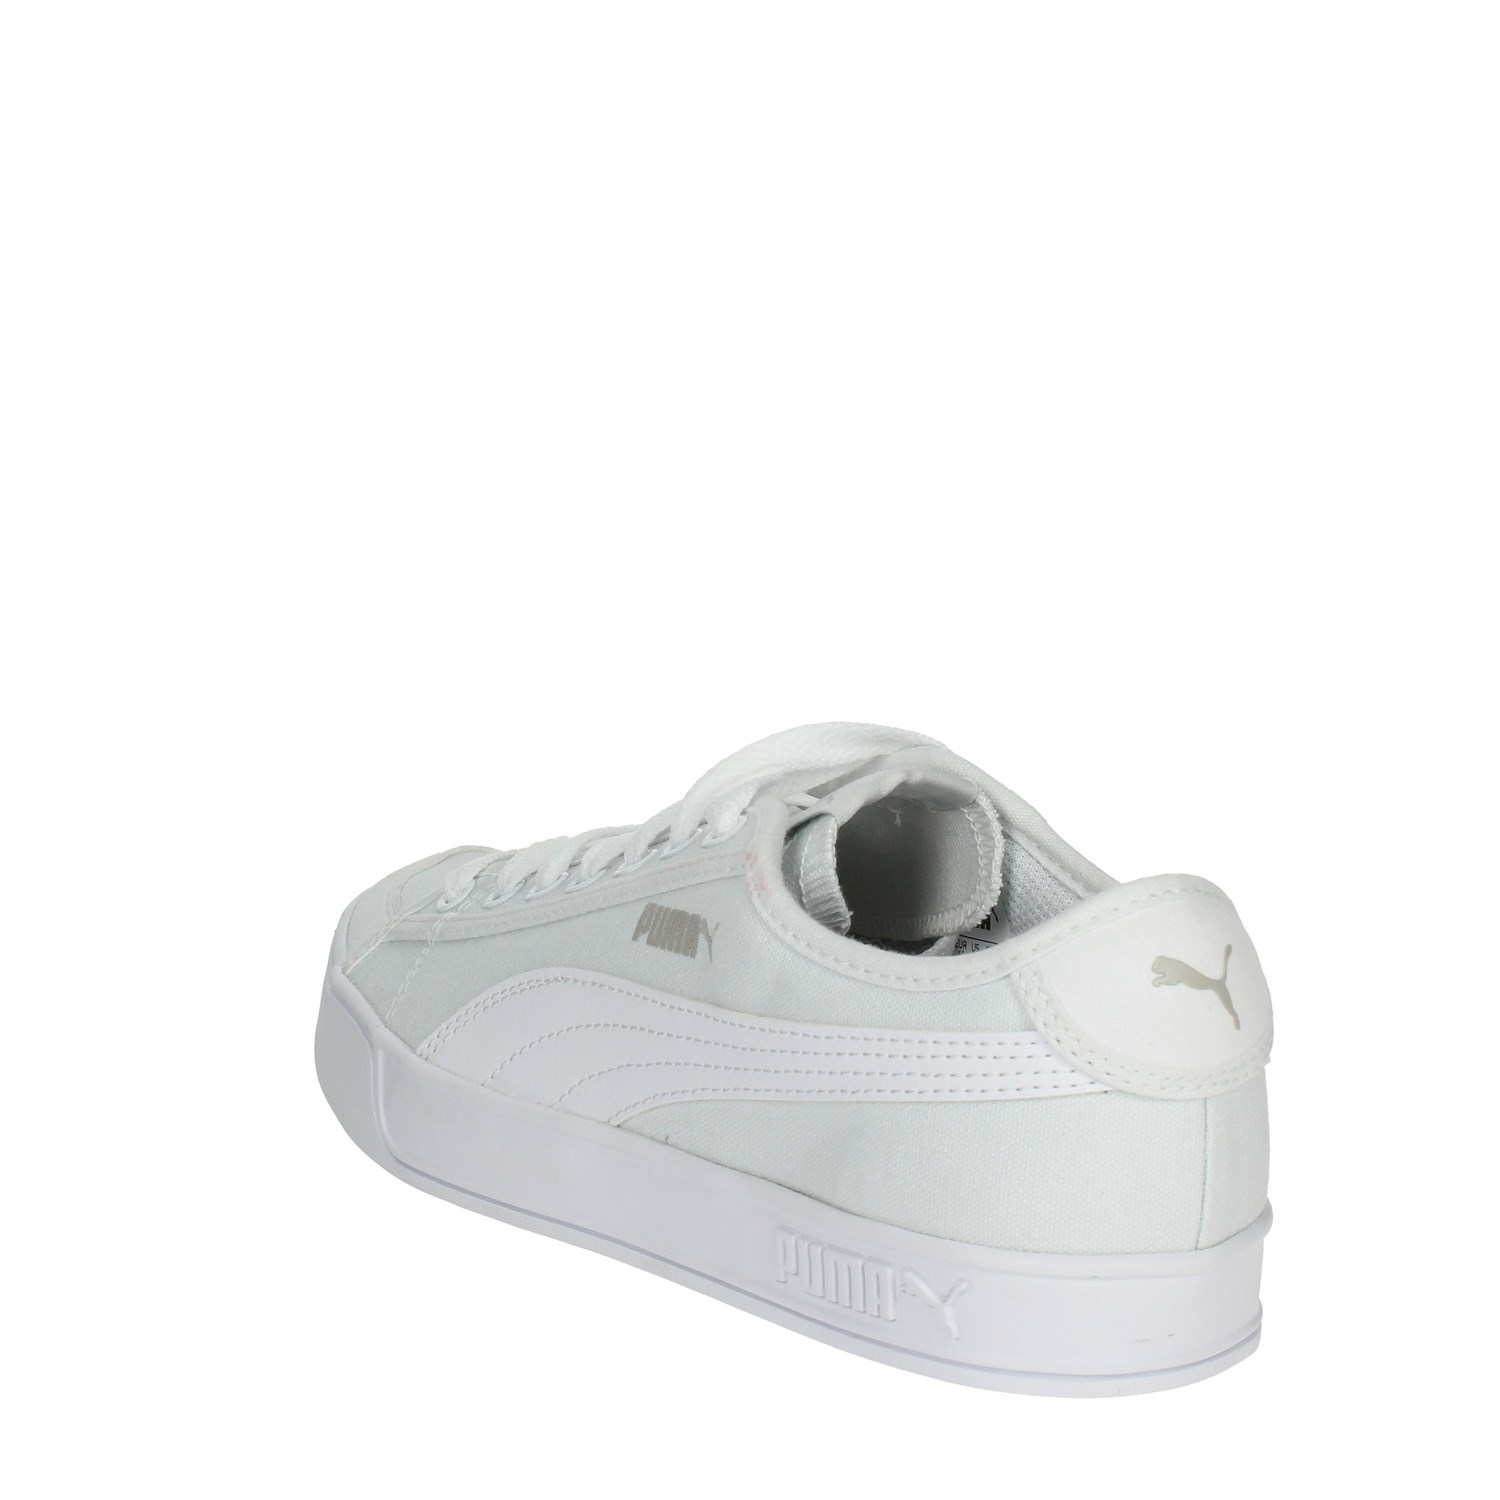 Details about Puma 365968 03 White Low Sneakers Man SpringSummer